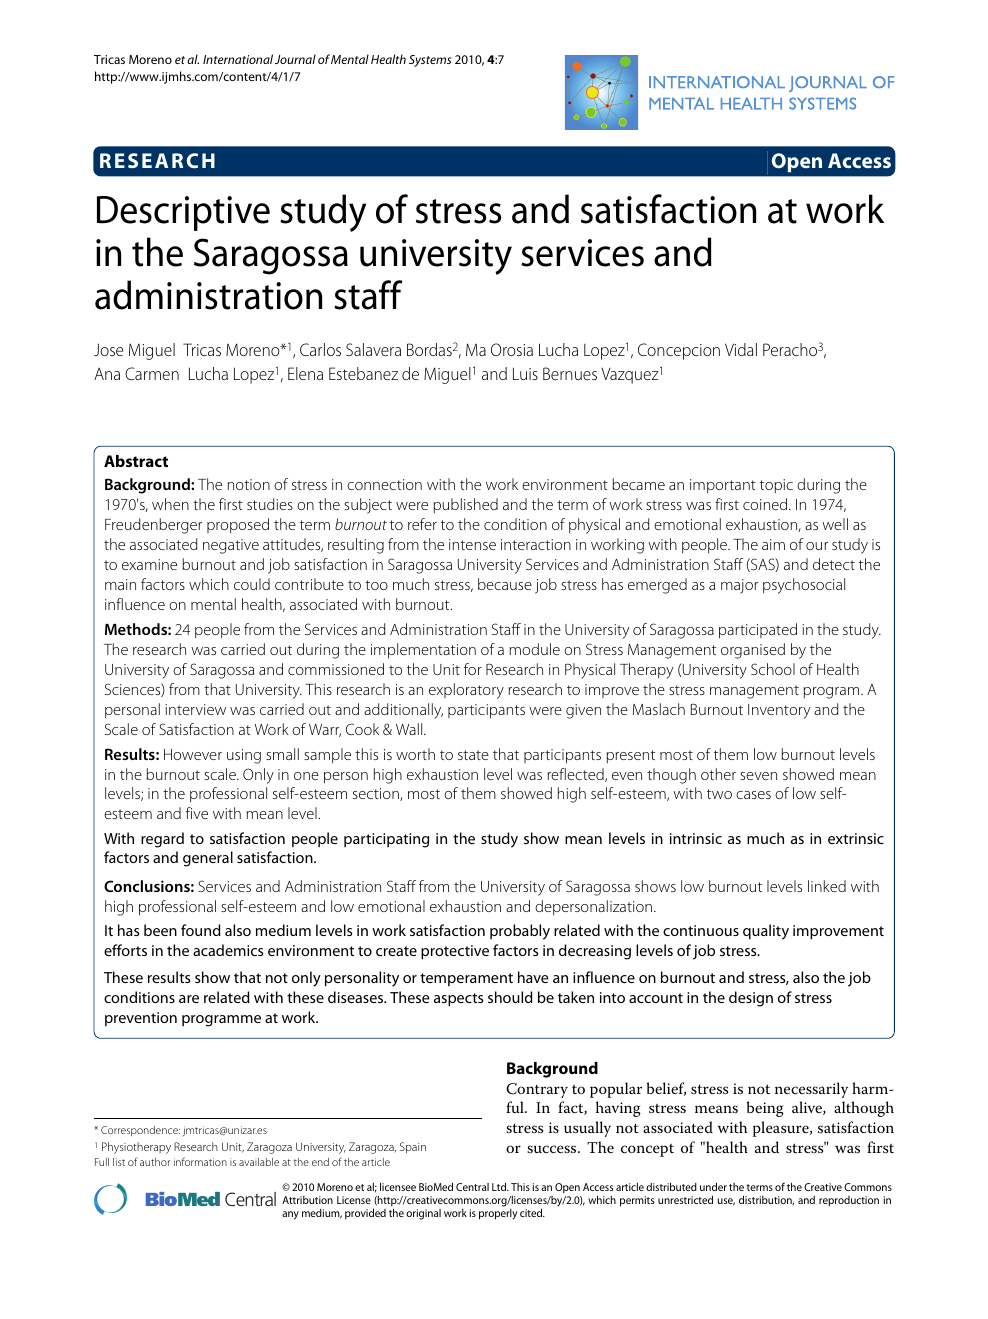 stress health term paper